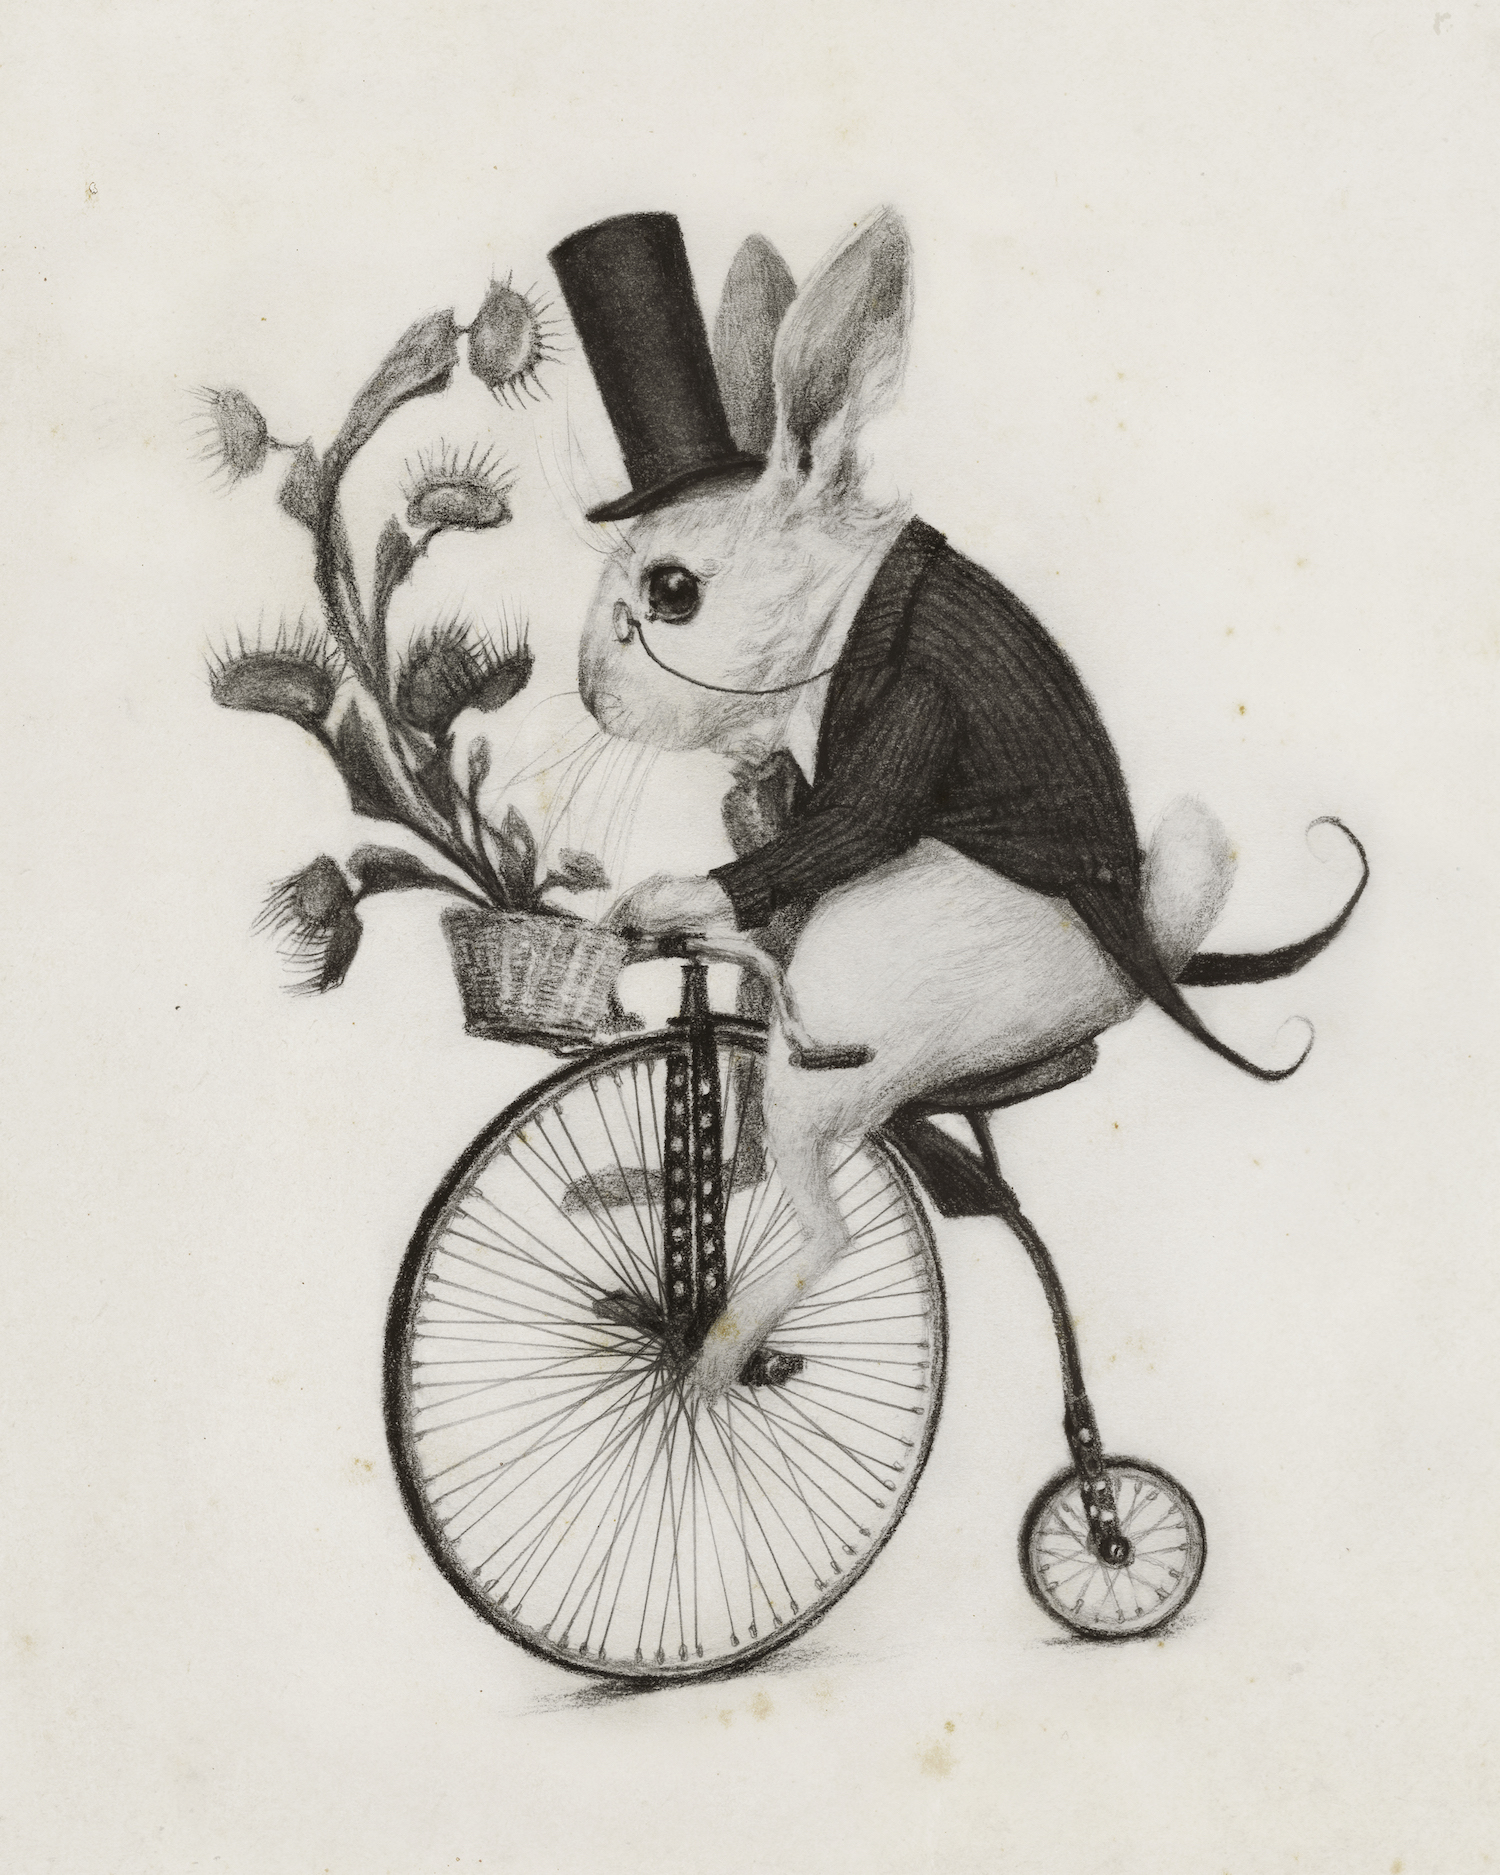 illustration_deliveryrabbit.jpg